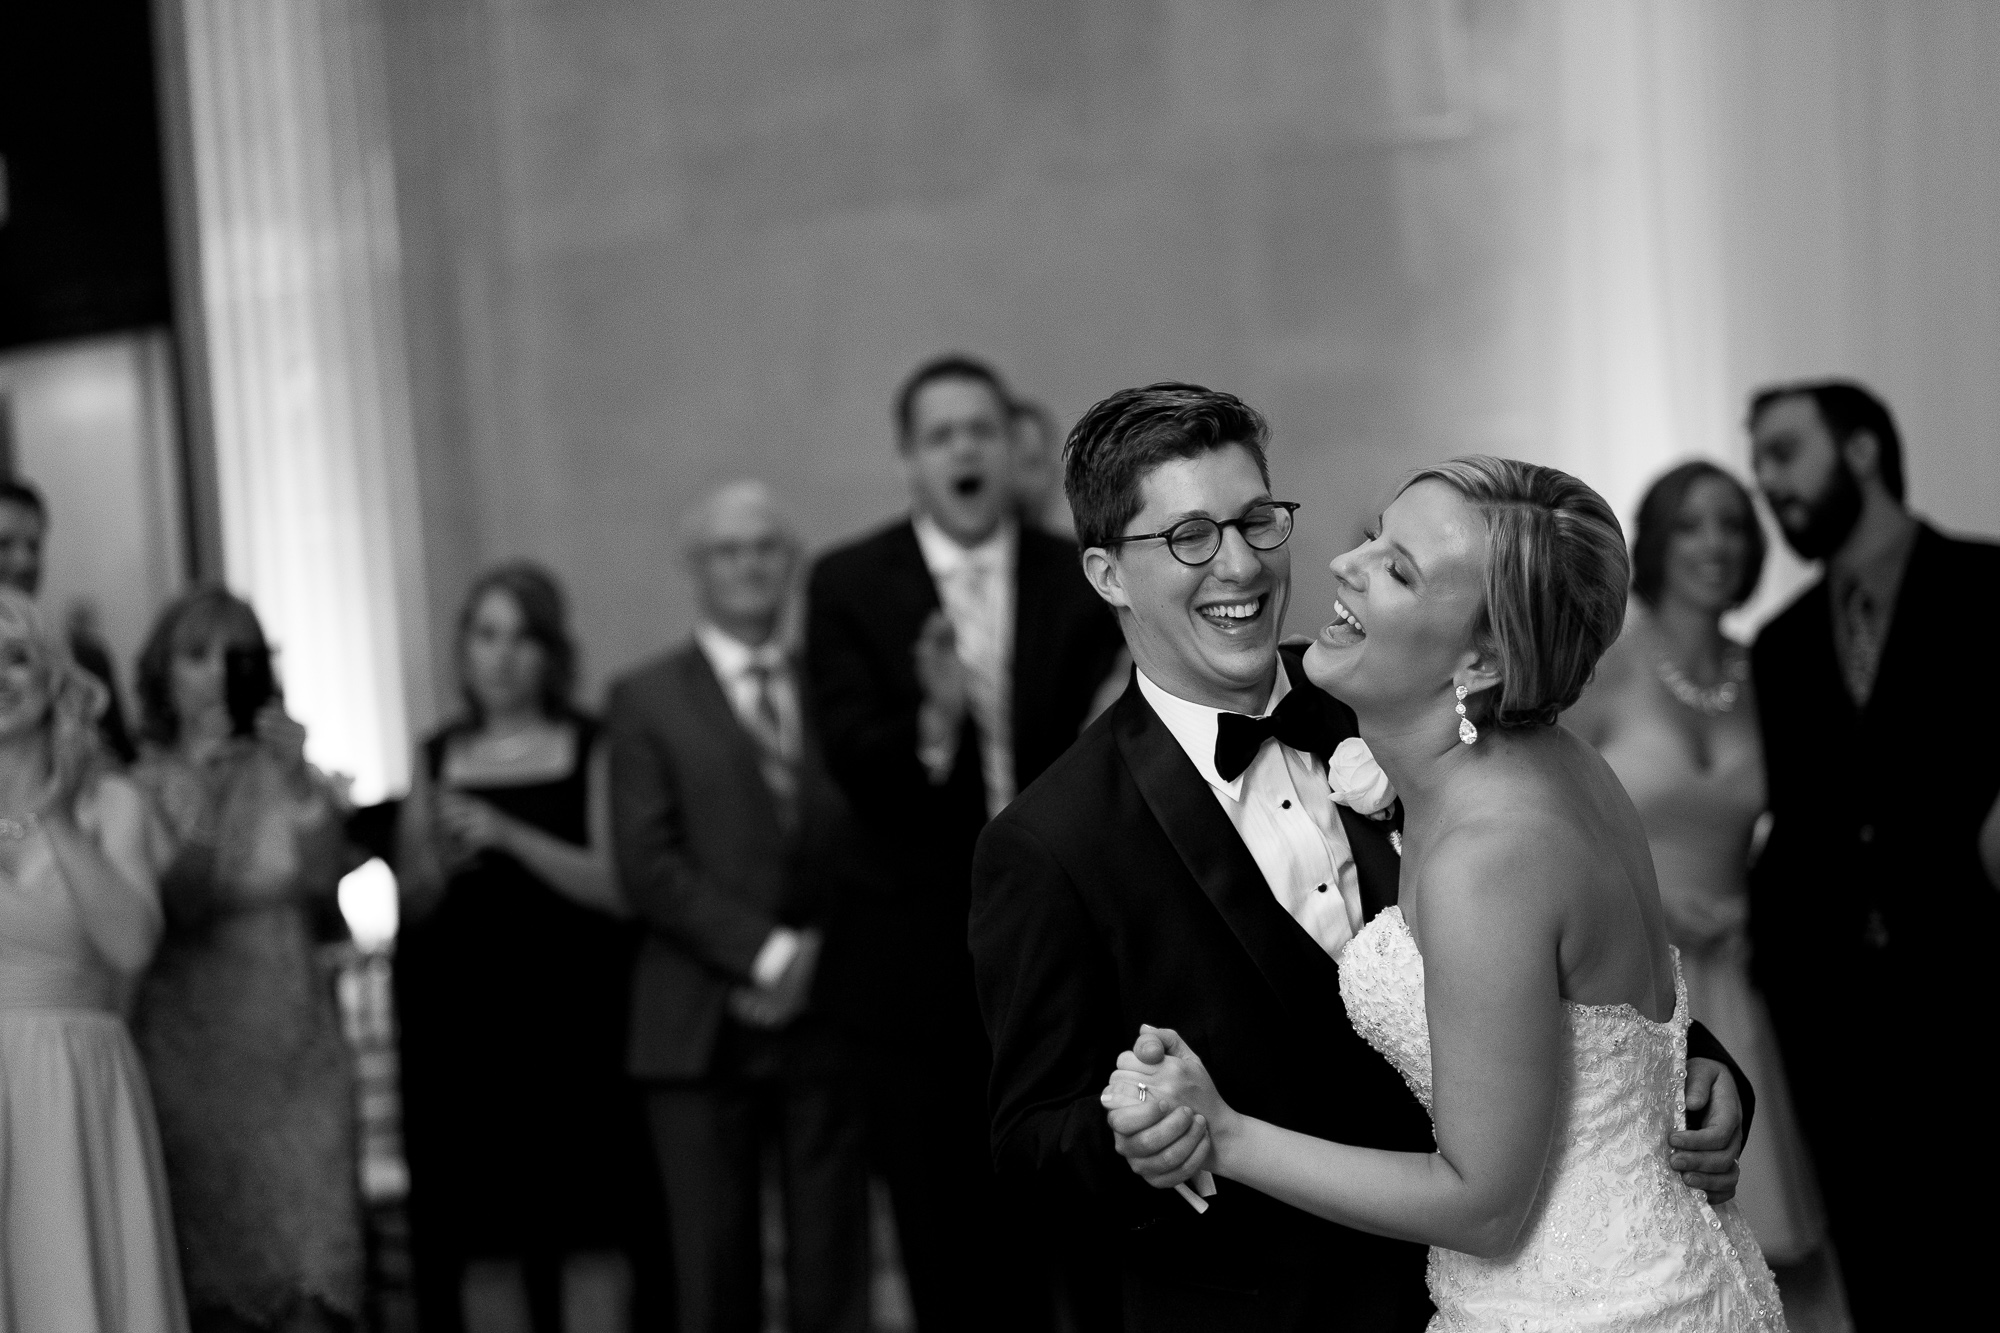 Danielle + Eric share a laugh during their first dance as a married couple at their One King West Hotel reception.